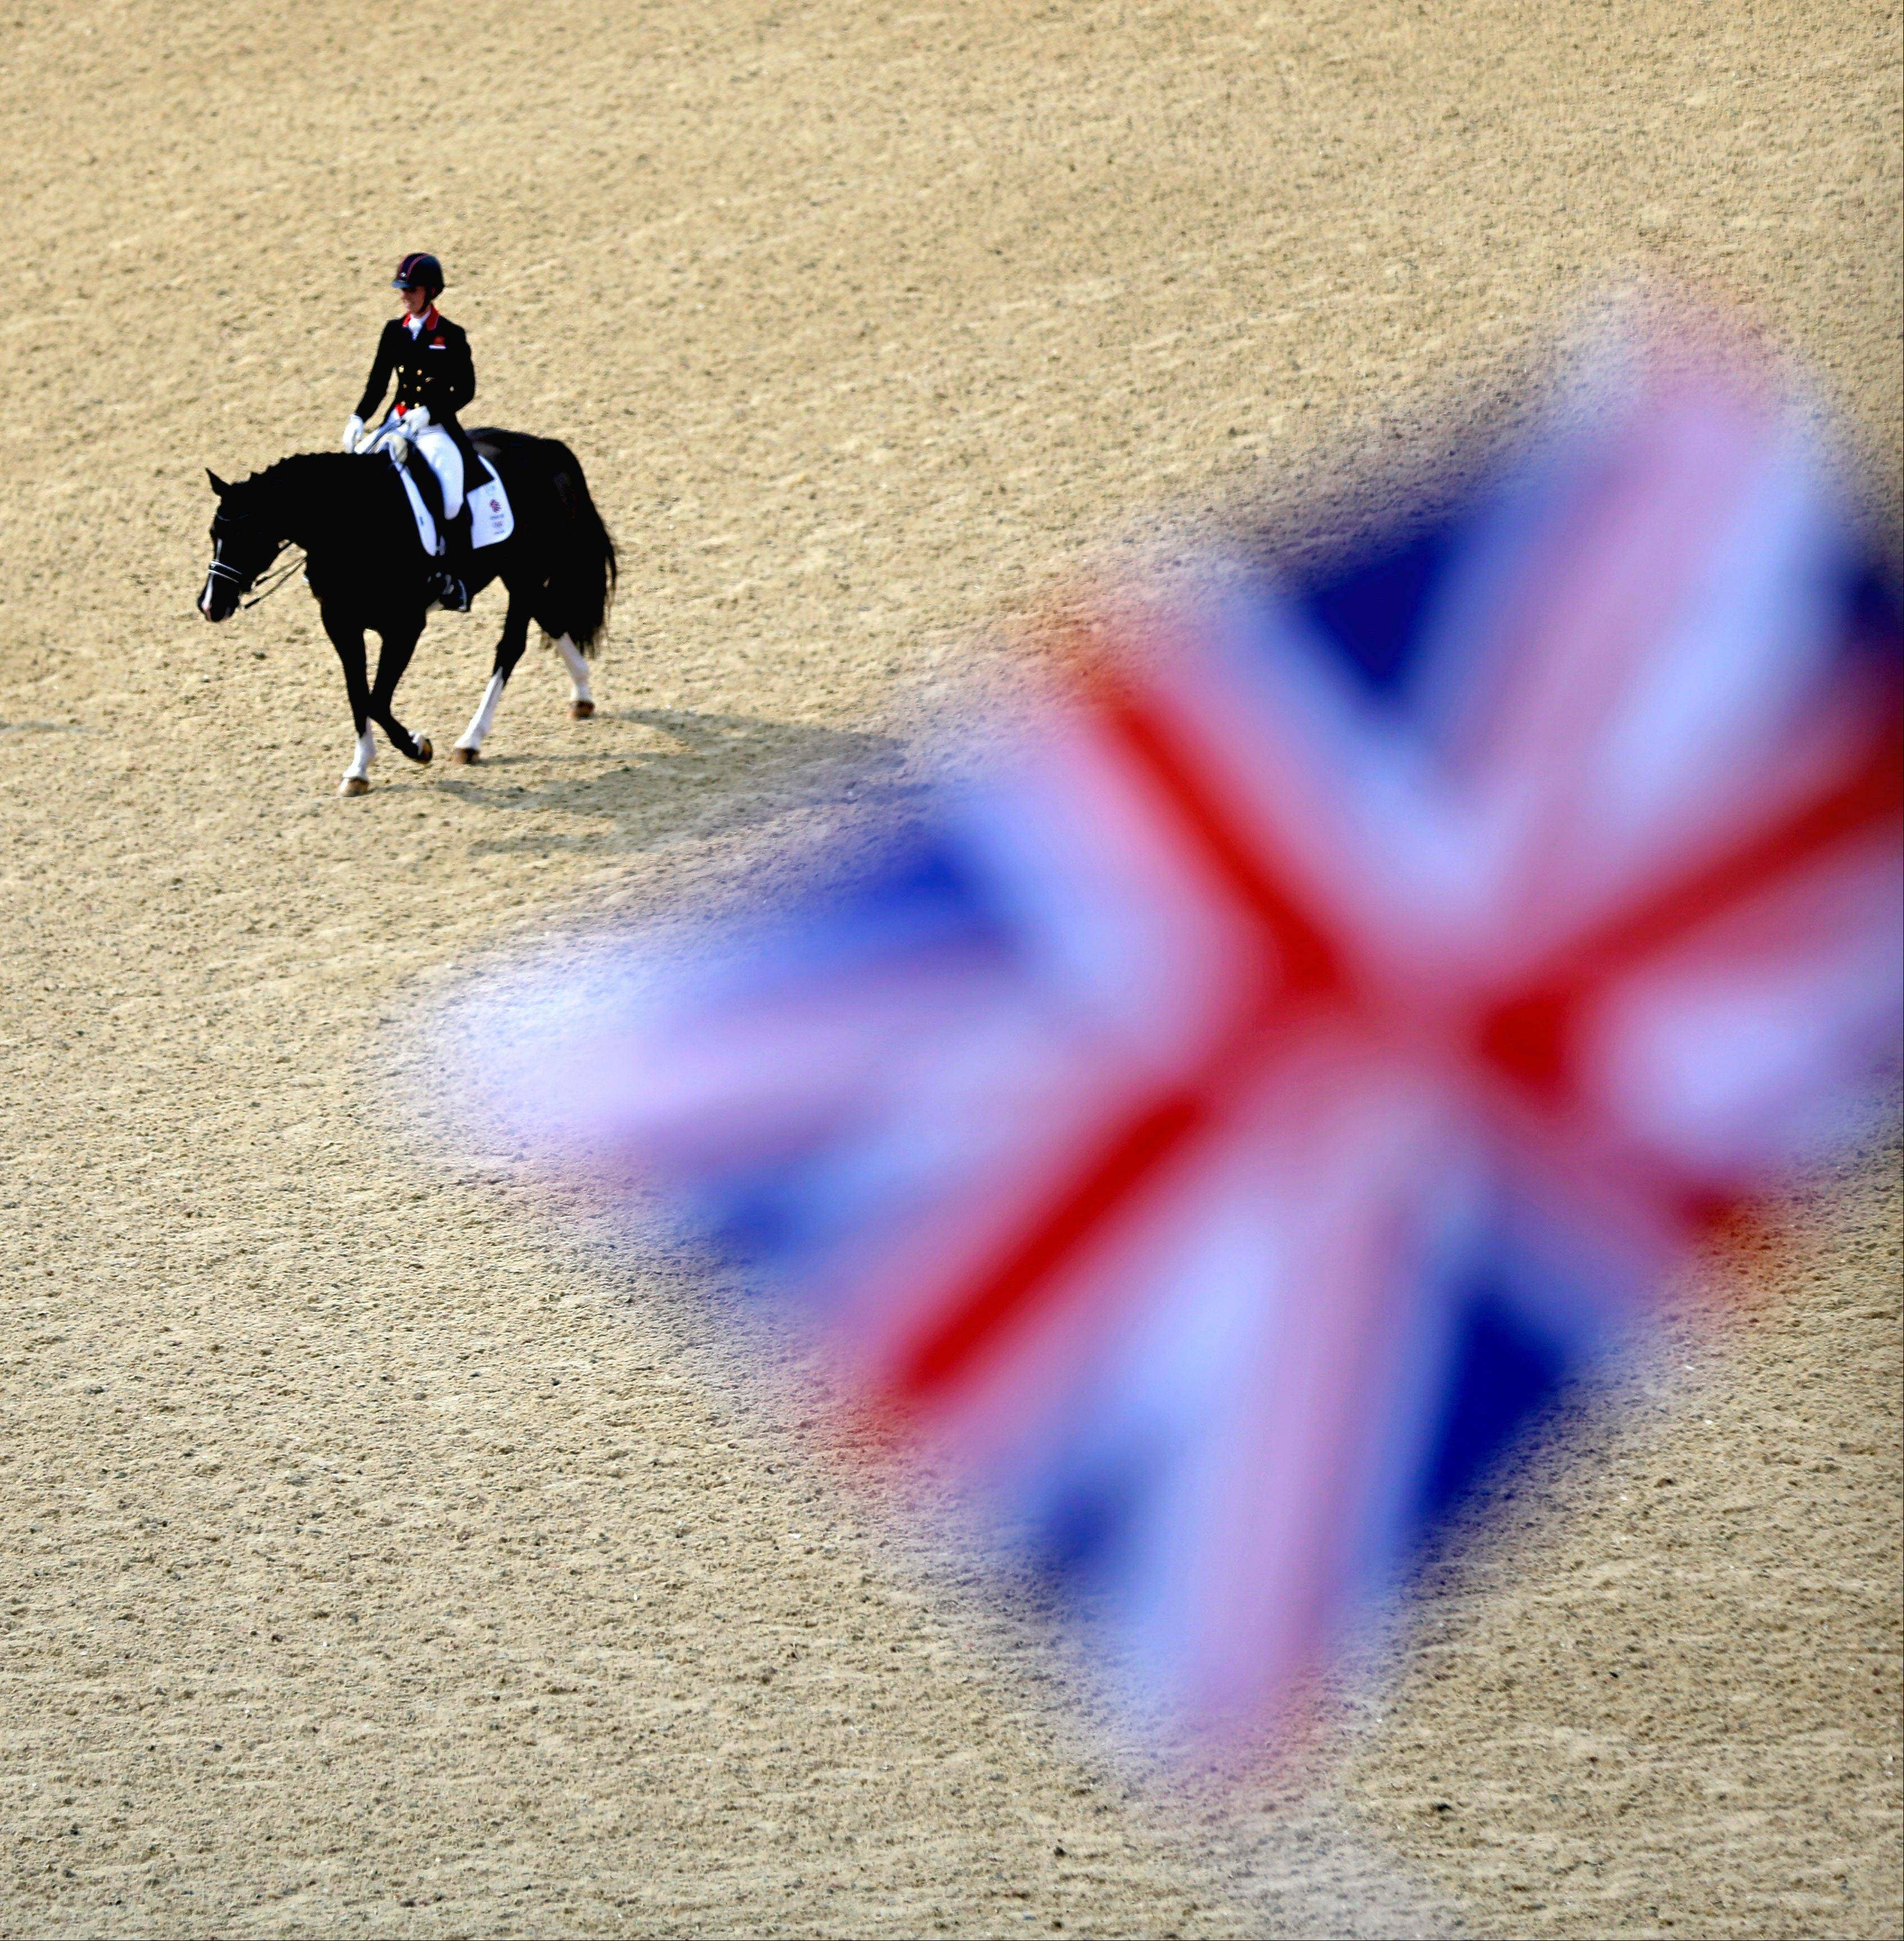 Charlotte Dujardin, of Great Britain, exits the arena after completing her routine with her horse Valegro to win the gold medal in the equestrian dressage individual competition at the 2012 Summer Olympics, Thursday, Aug. 9, 2012, in London.